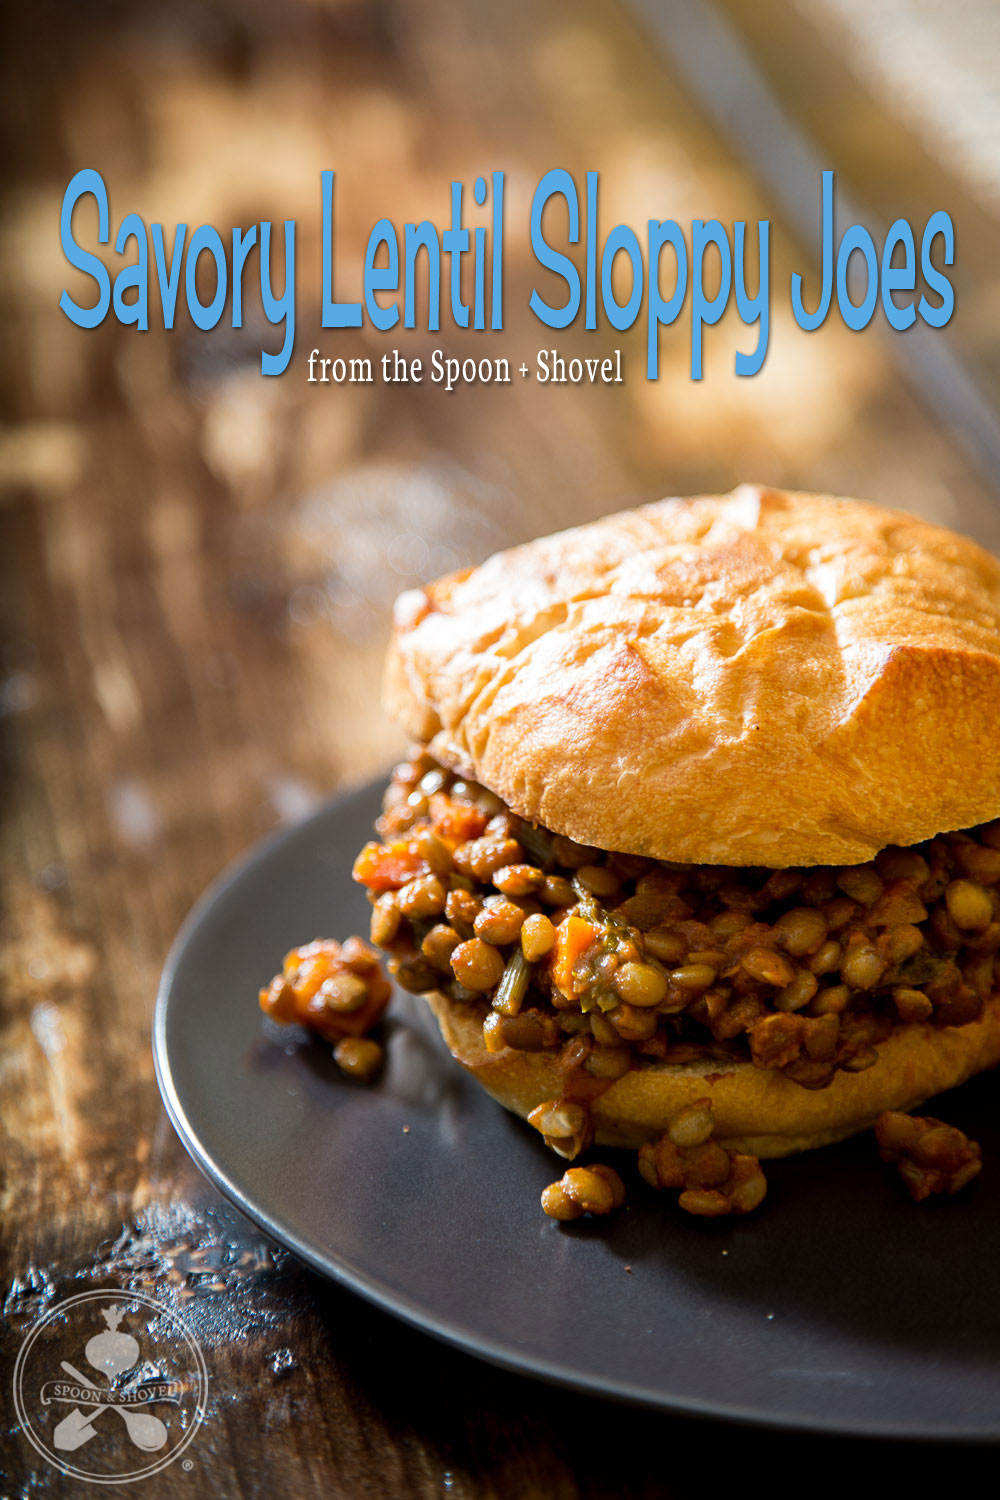 Vegan lentil sloppy joes from The Spoon + Shovel